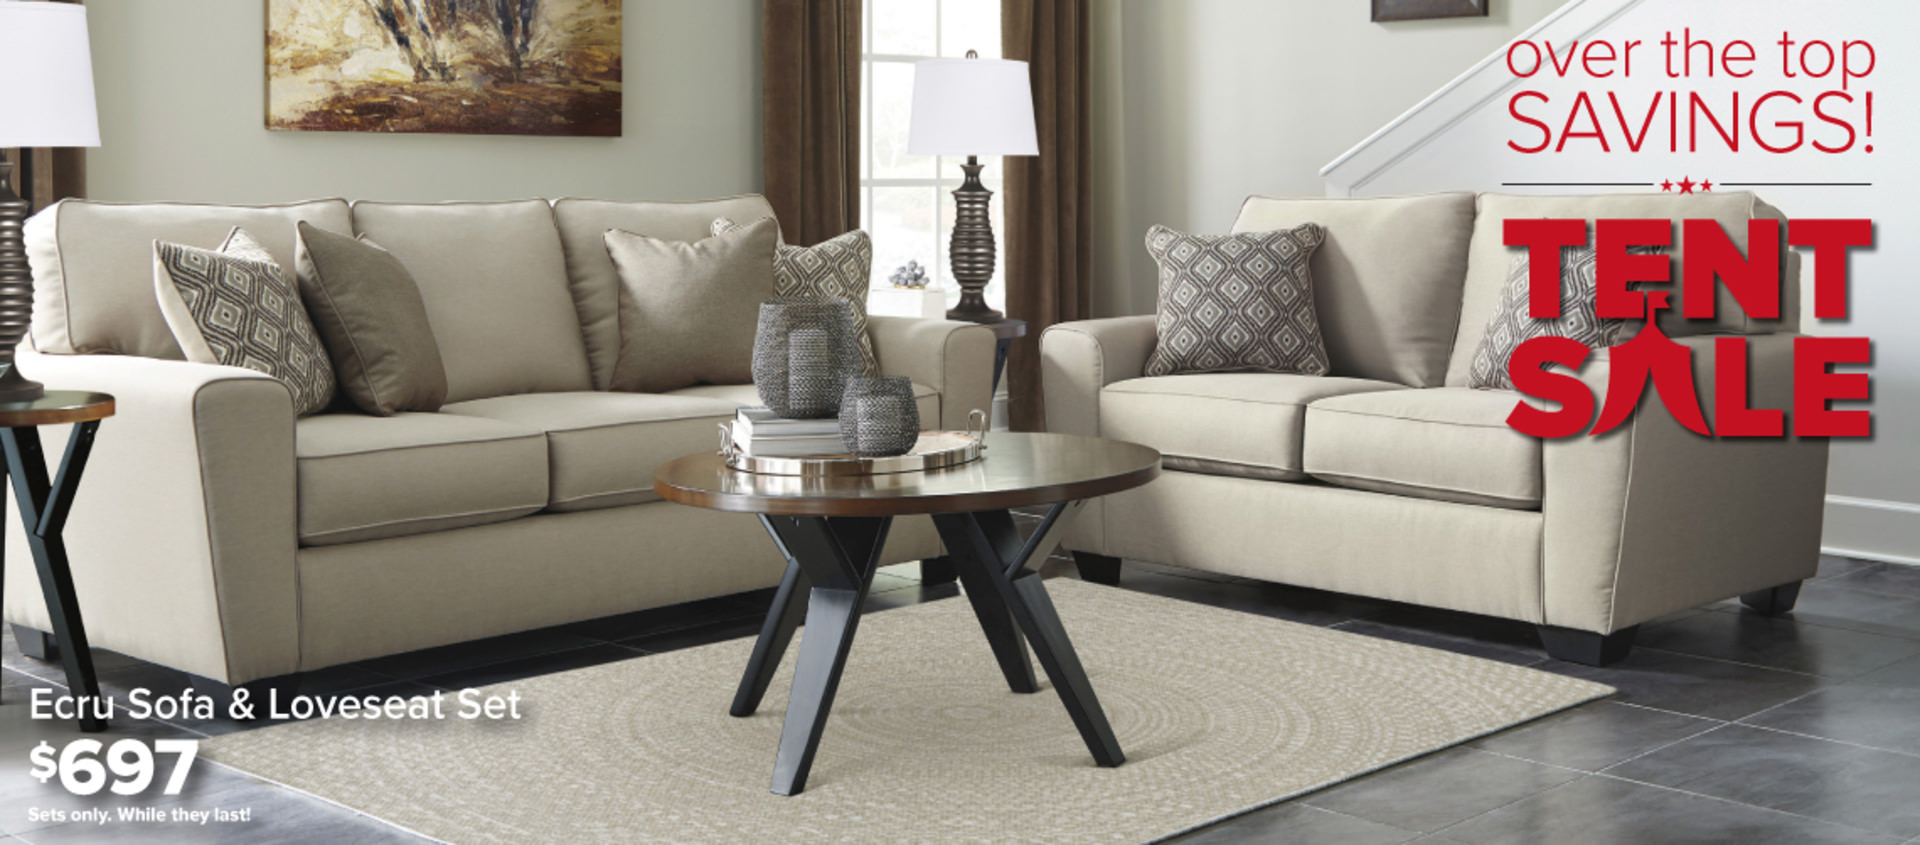 Hom Furniture Furniture Stores In Minneapolis Minnesota